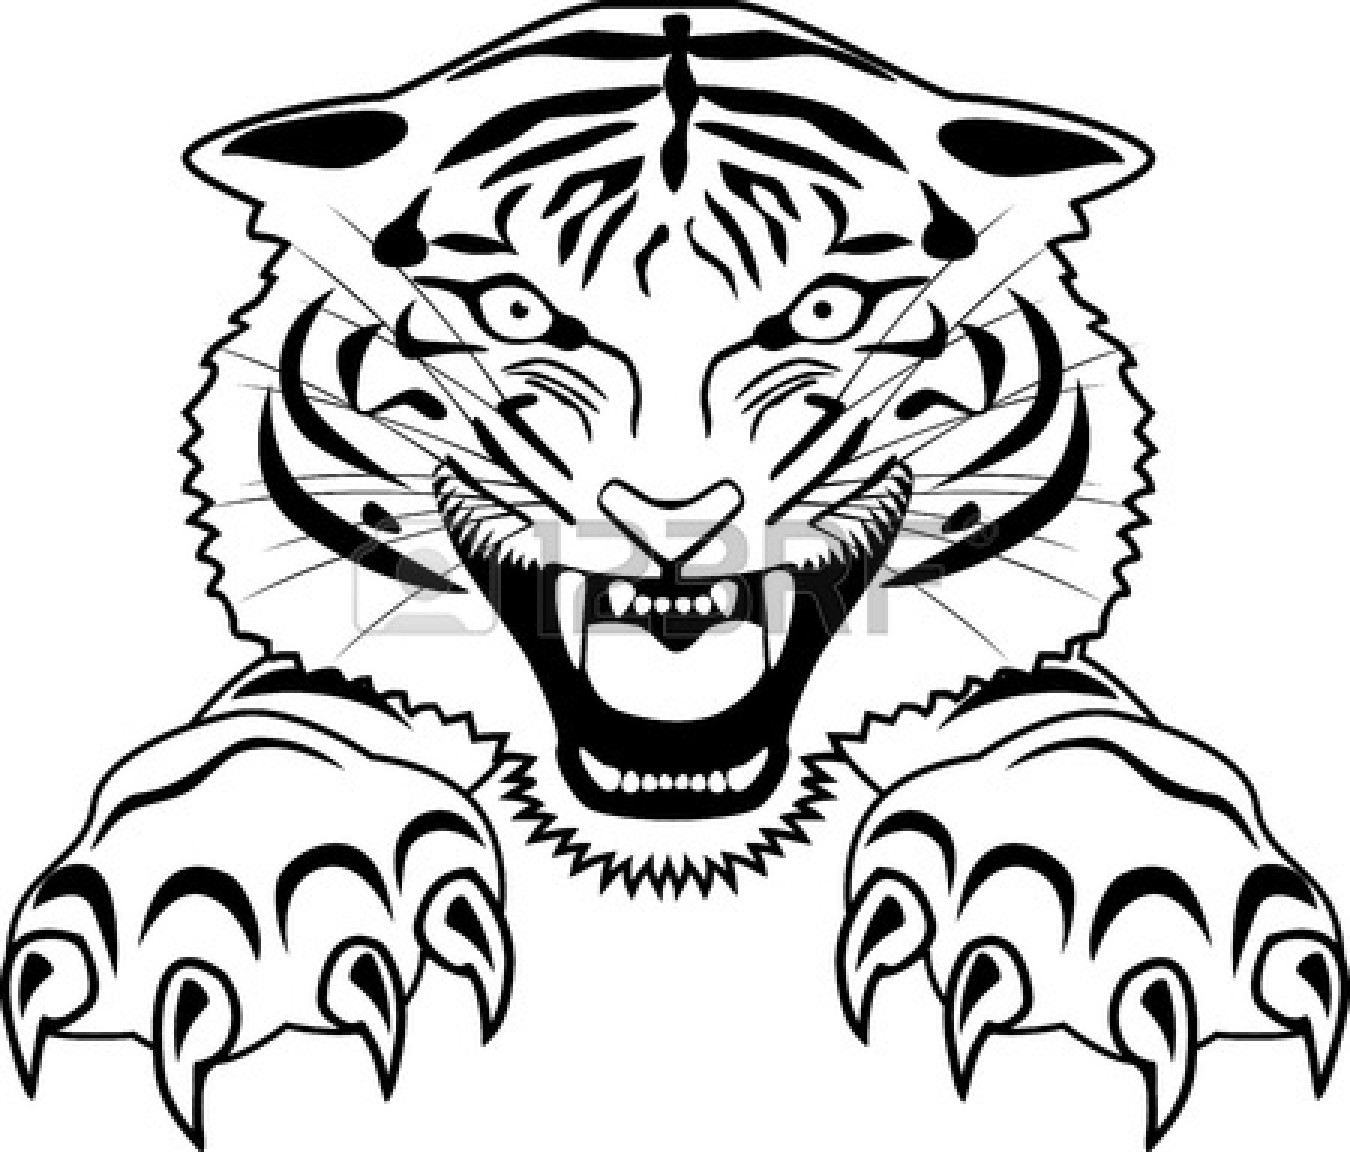 Tiger Eyes Tattoo   Clipart Panda   Free Clipart Images